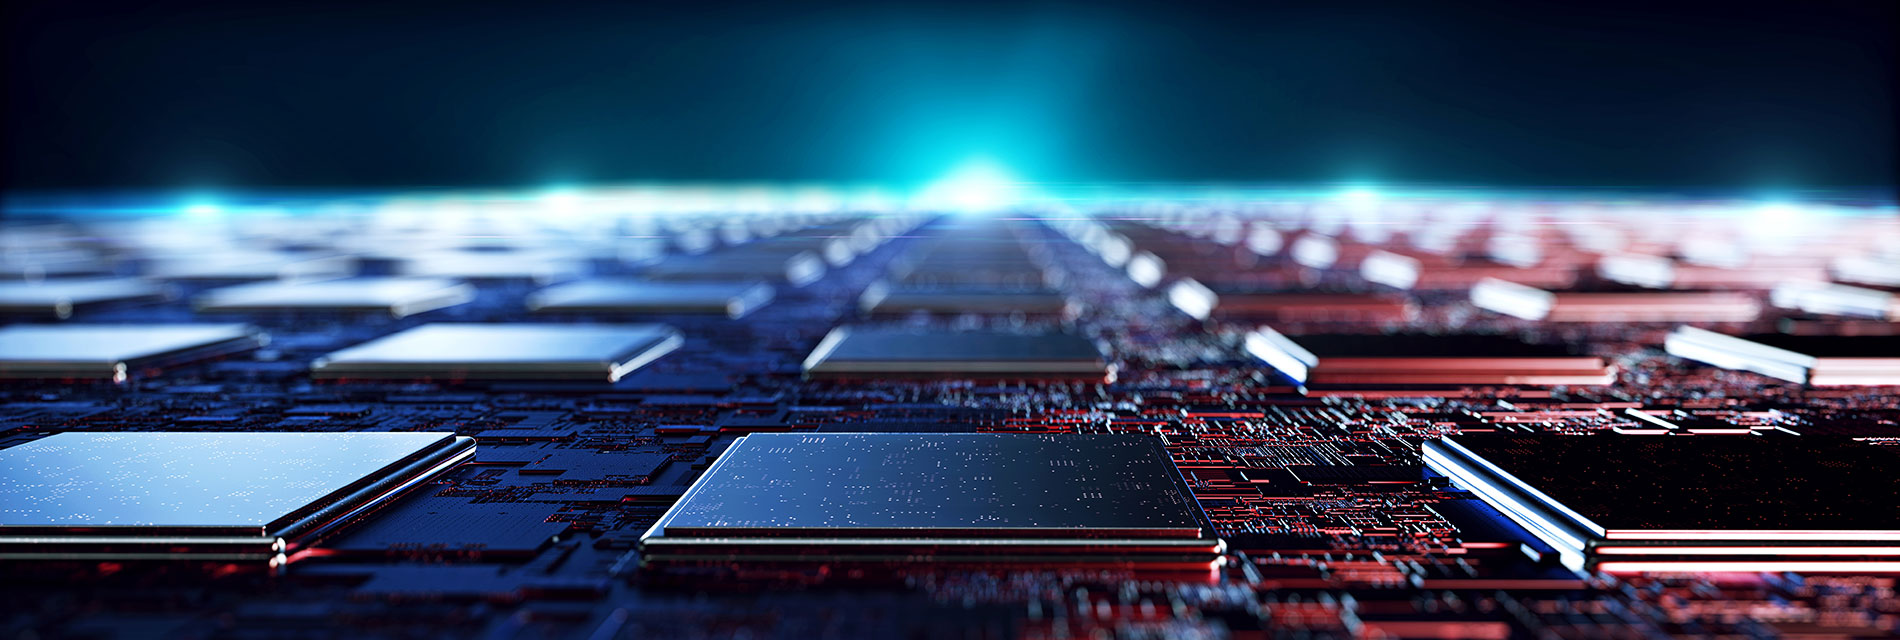 Hundreds of microchip processors aligned together